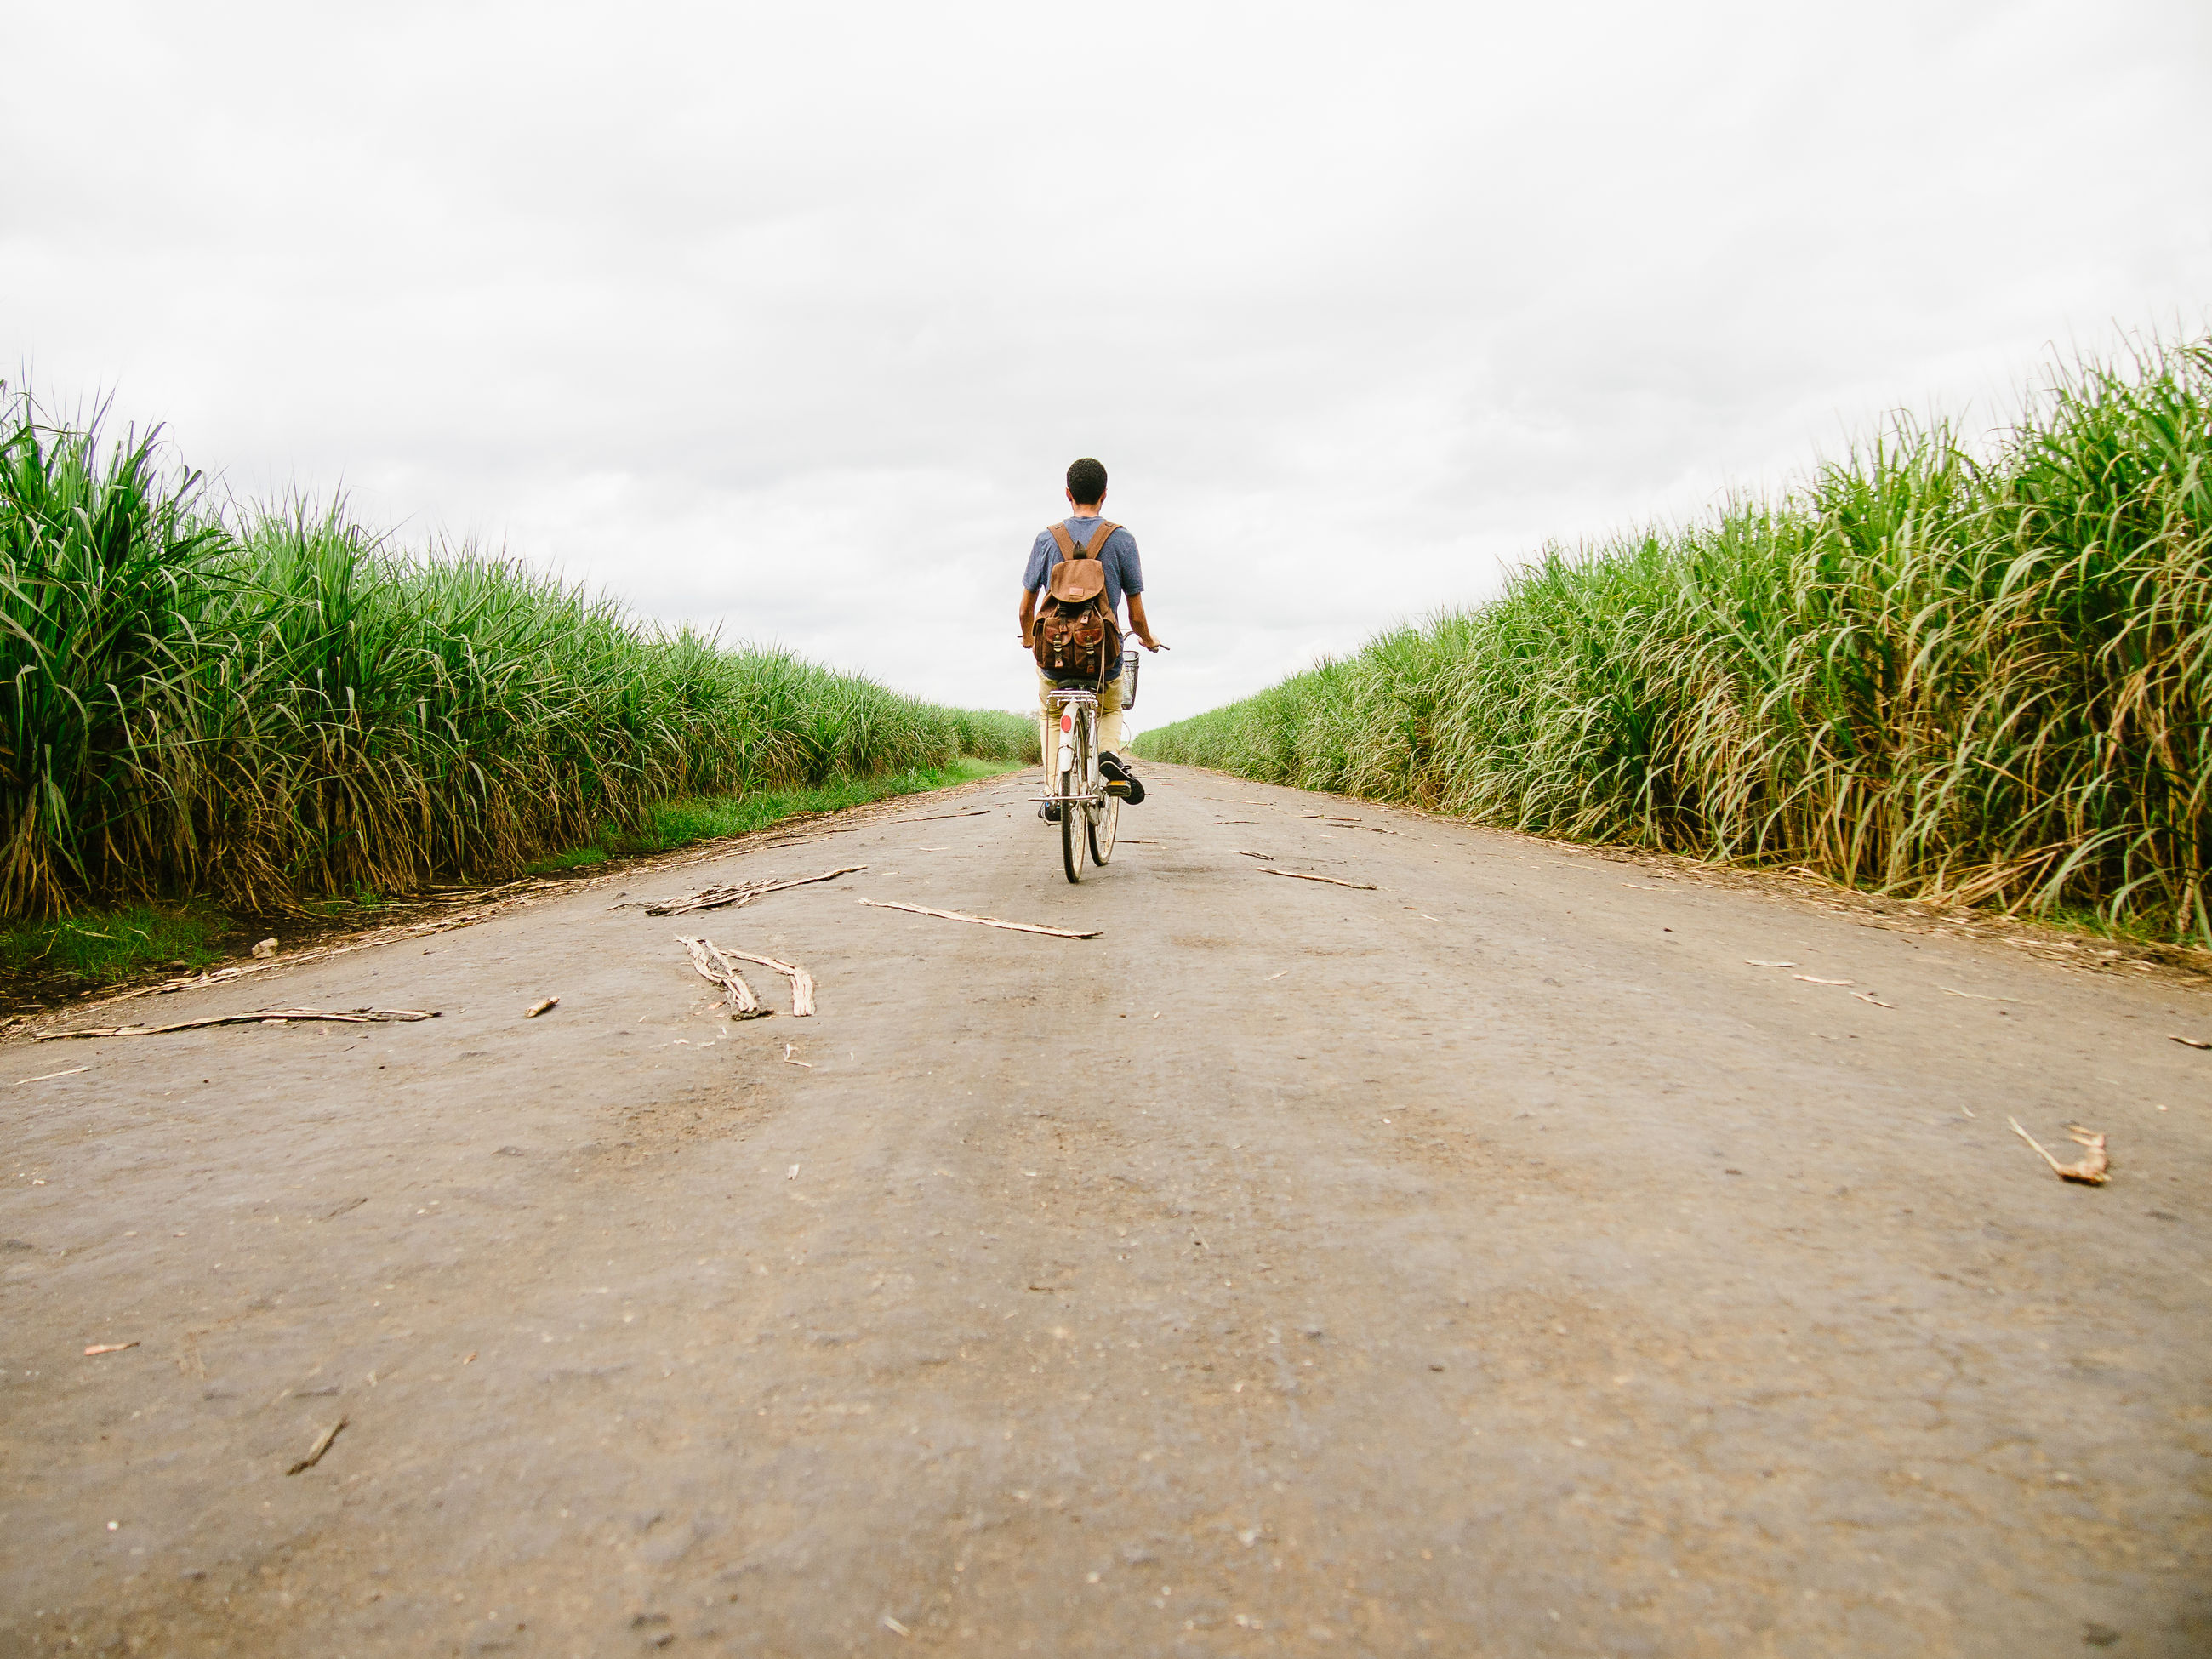 full length, lifestyles, leisure activity, the way forward, sky, casual clothing, walking, rear view, grass, men, dirt road, bicycle, riding, landscape, transportation, field, road, nature